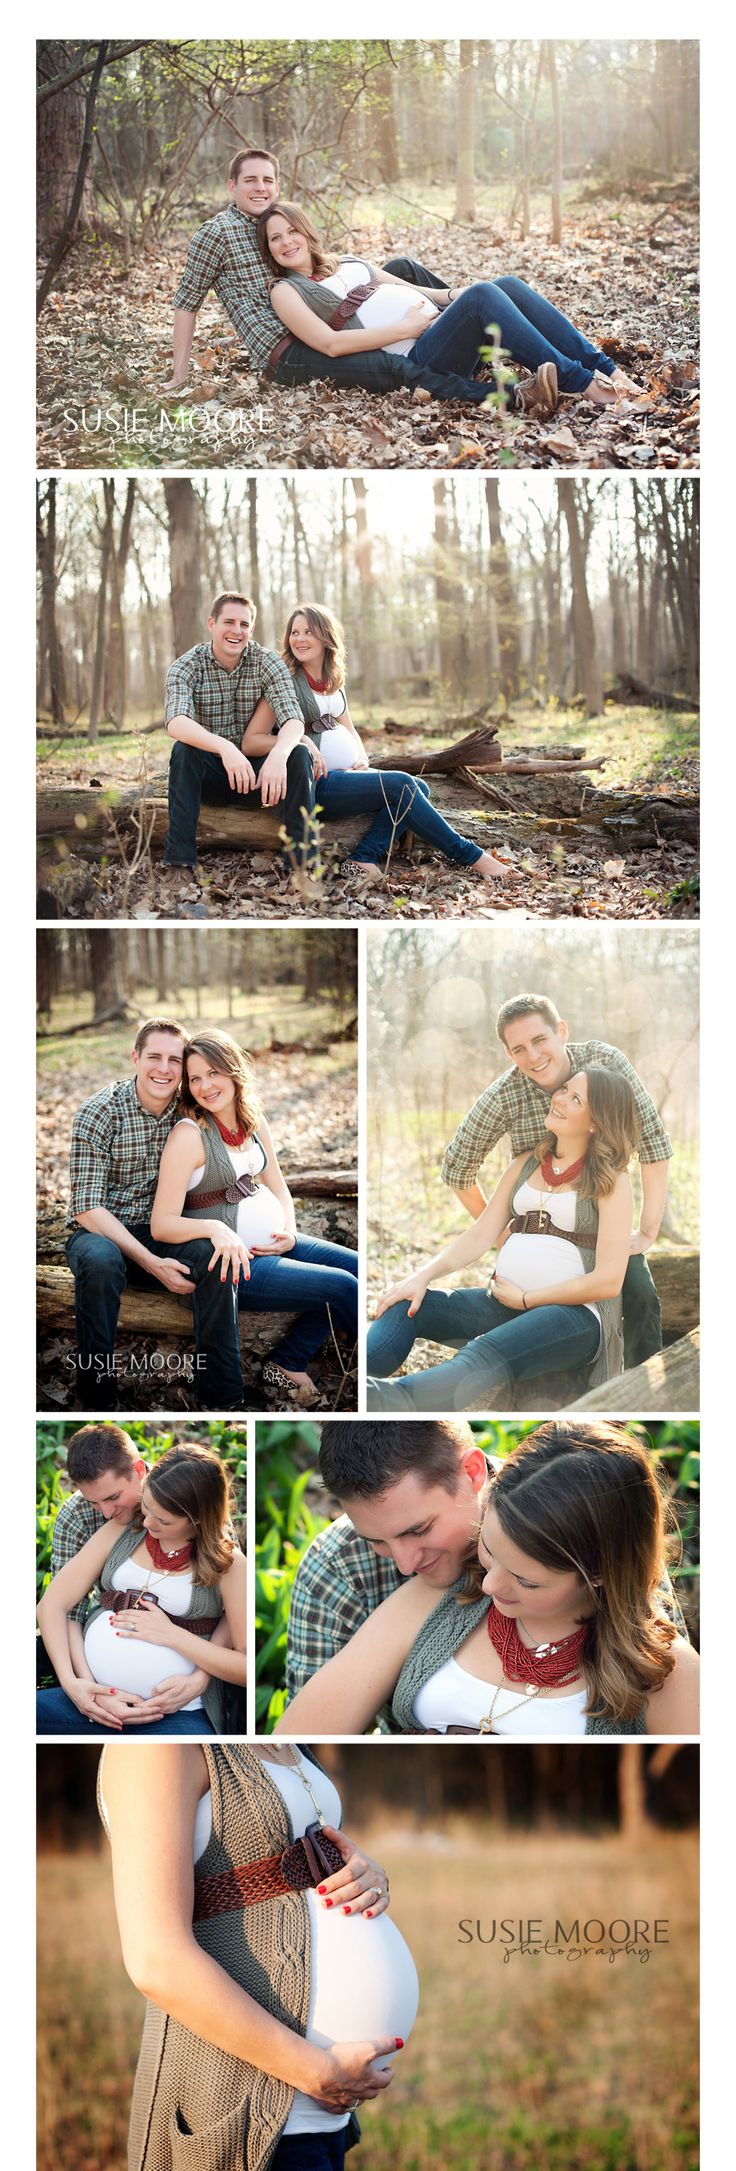 Susie Moore Photography | IL Senior Photographer - Part 2